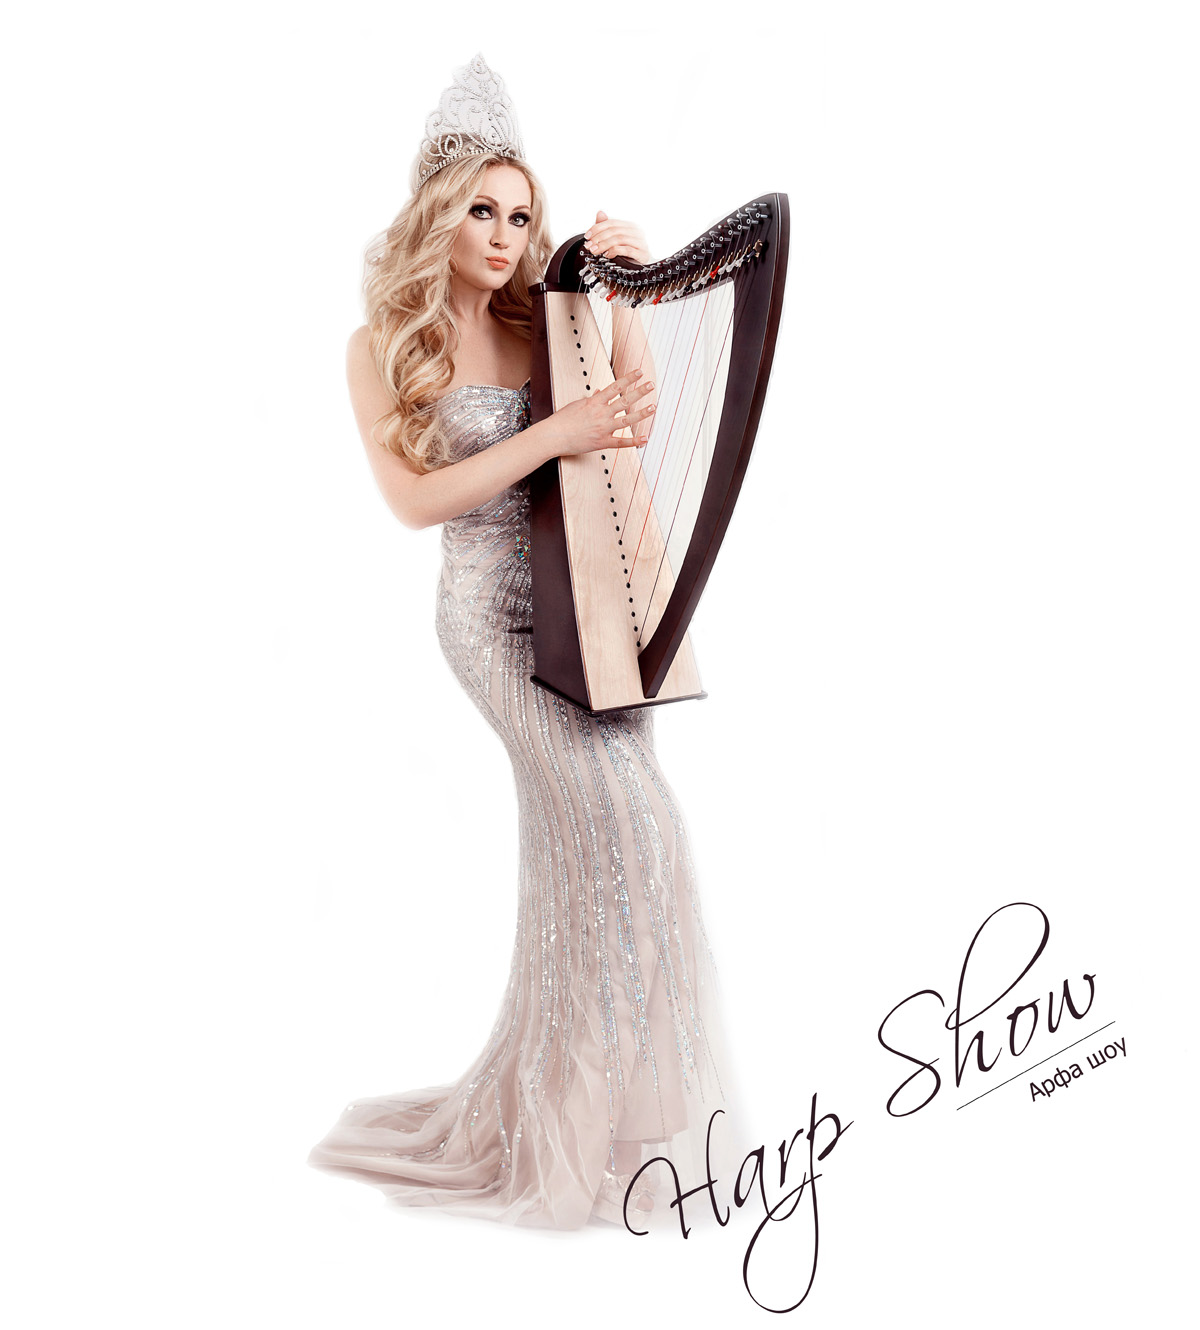 Harp Show - Luxury music project Арфа шоу